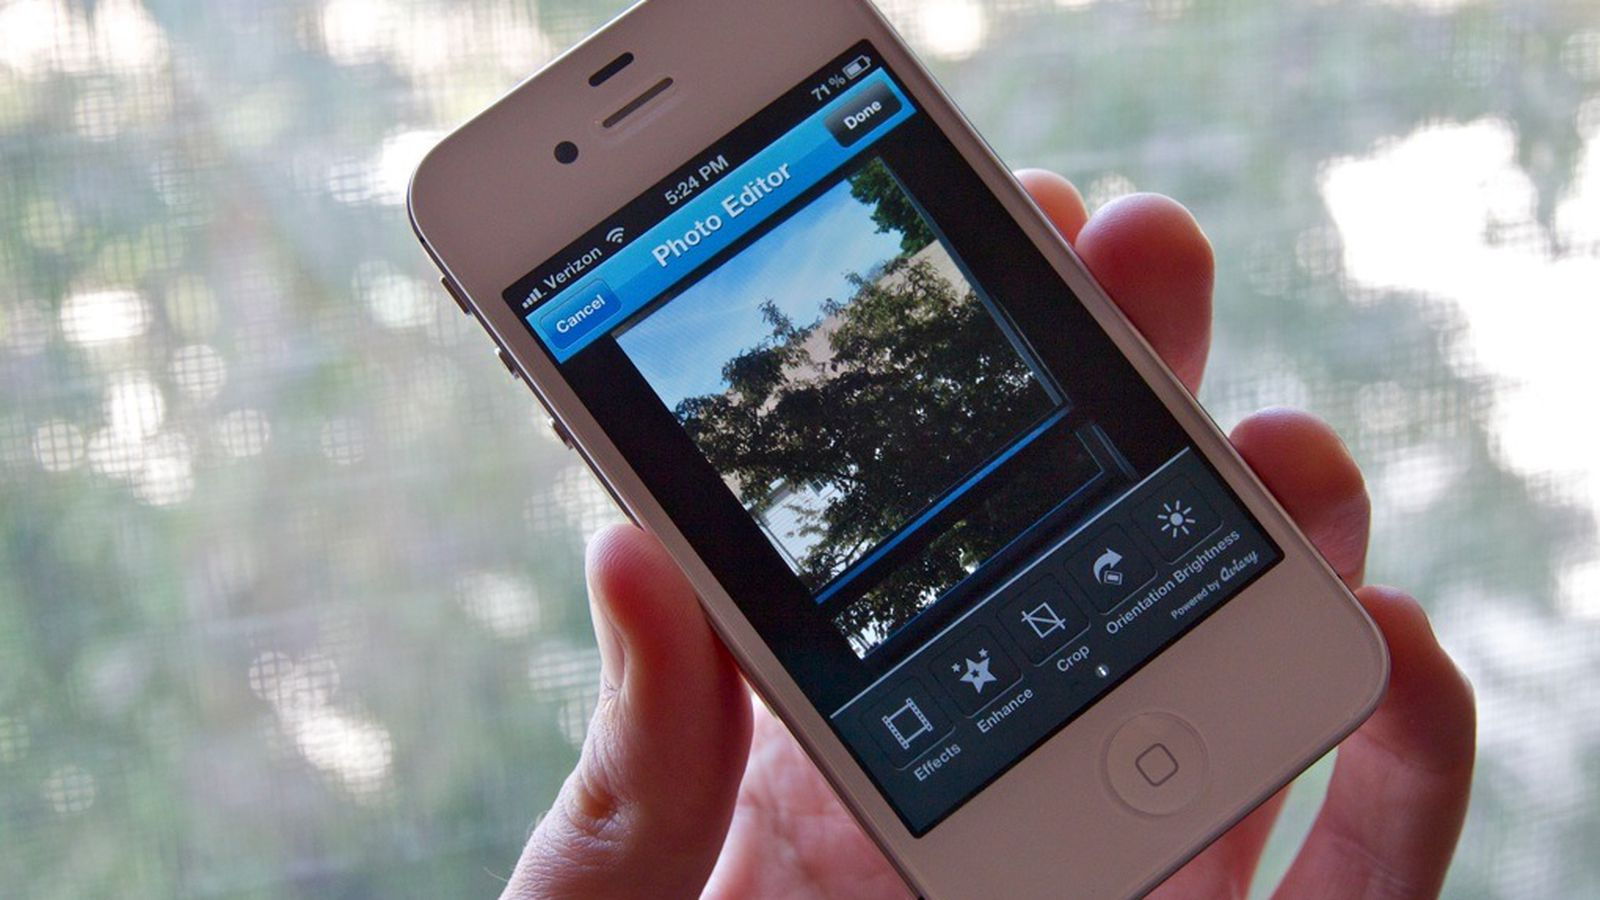 TwitPic's new iPhone app provides yet another way to tweak ...